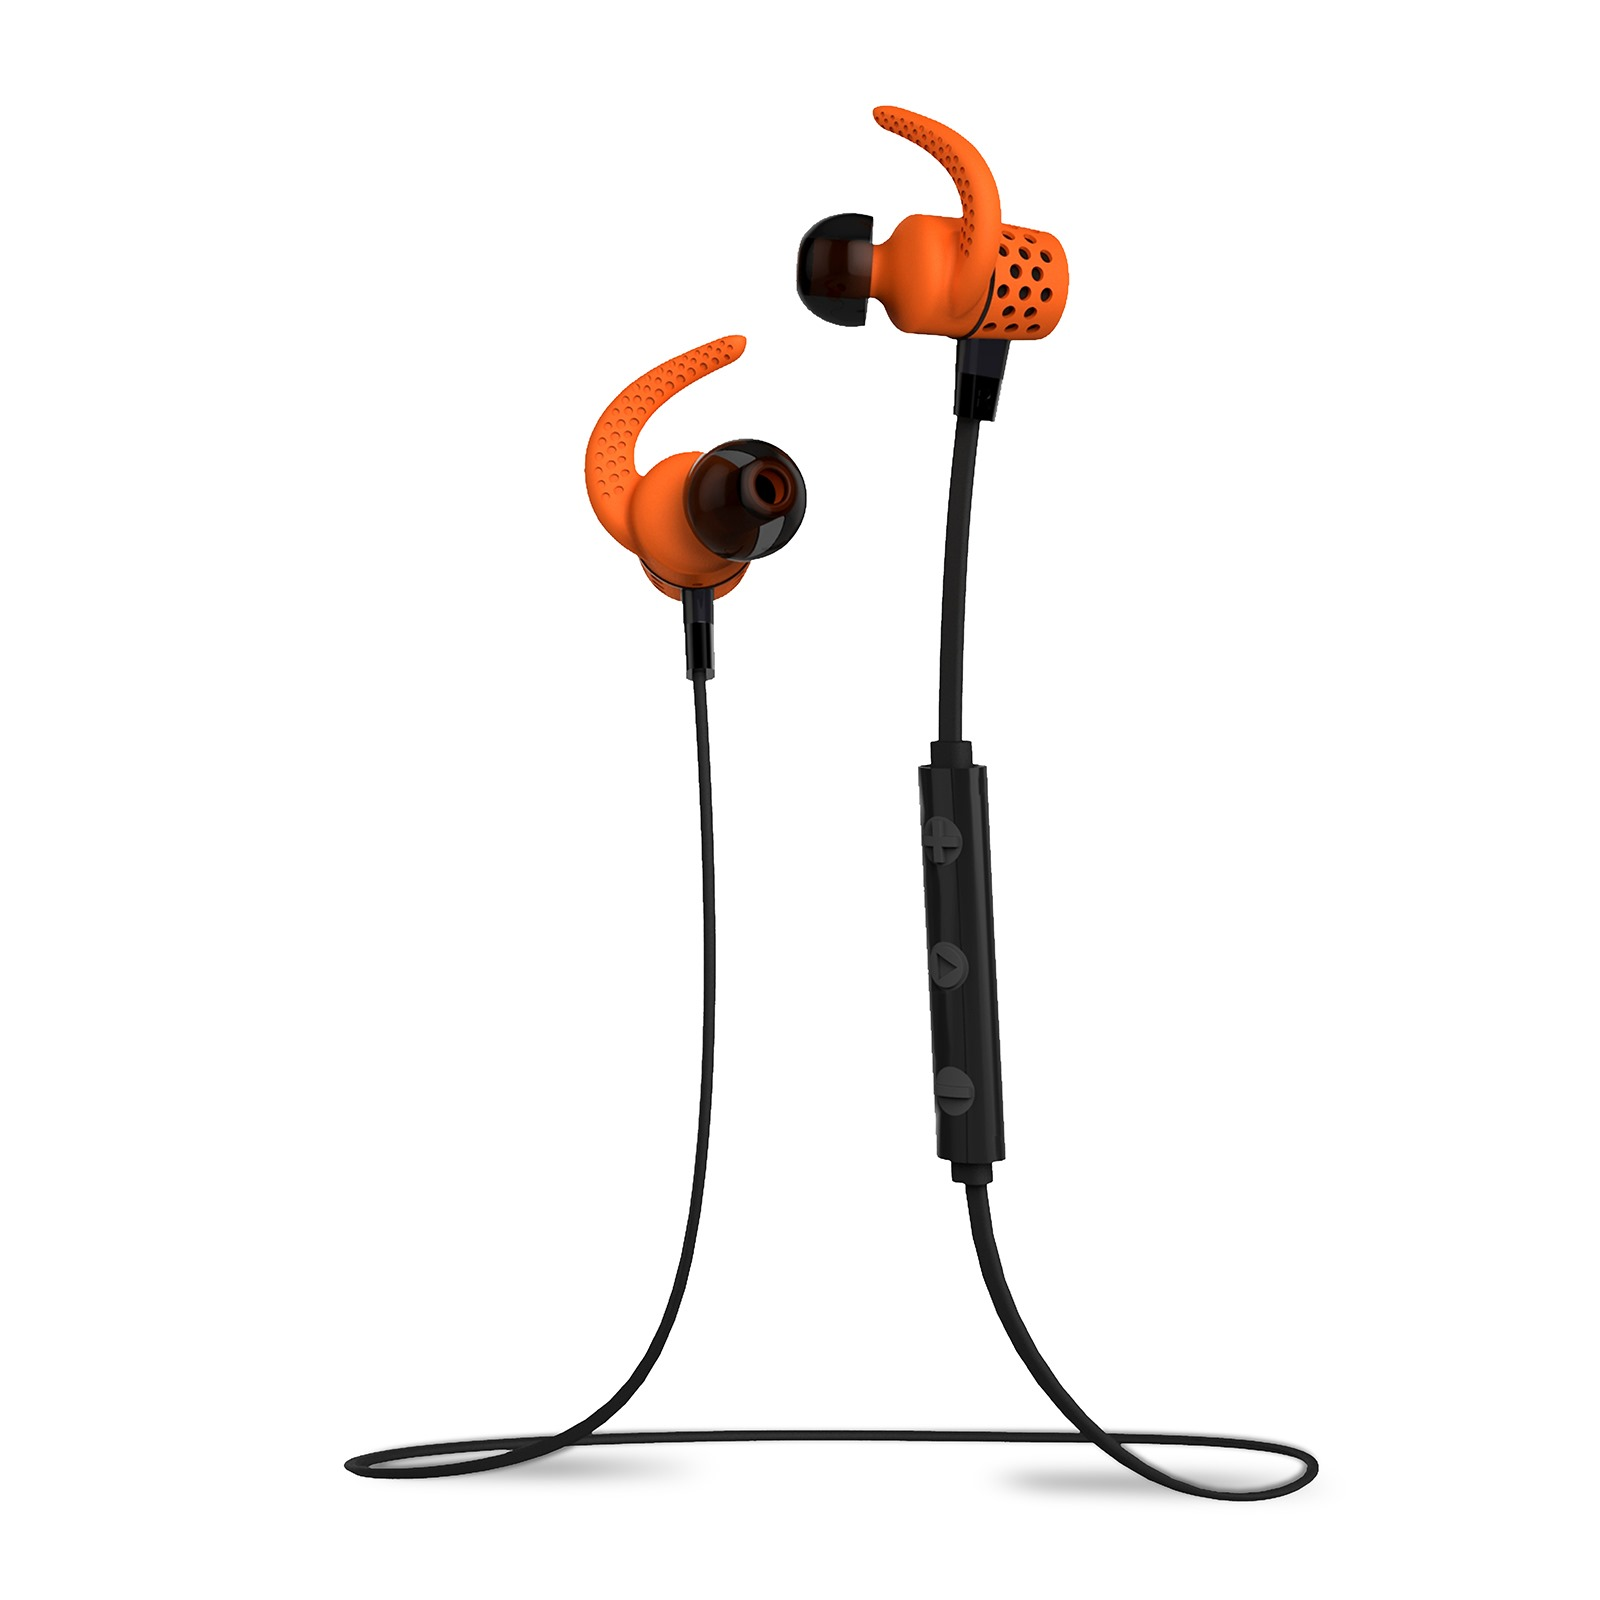 Blueant Wireless Stereo Bluetooth Headset for Bluetooth Enabled Devices - Retail Packaging - Orange